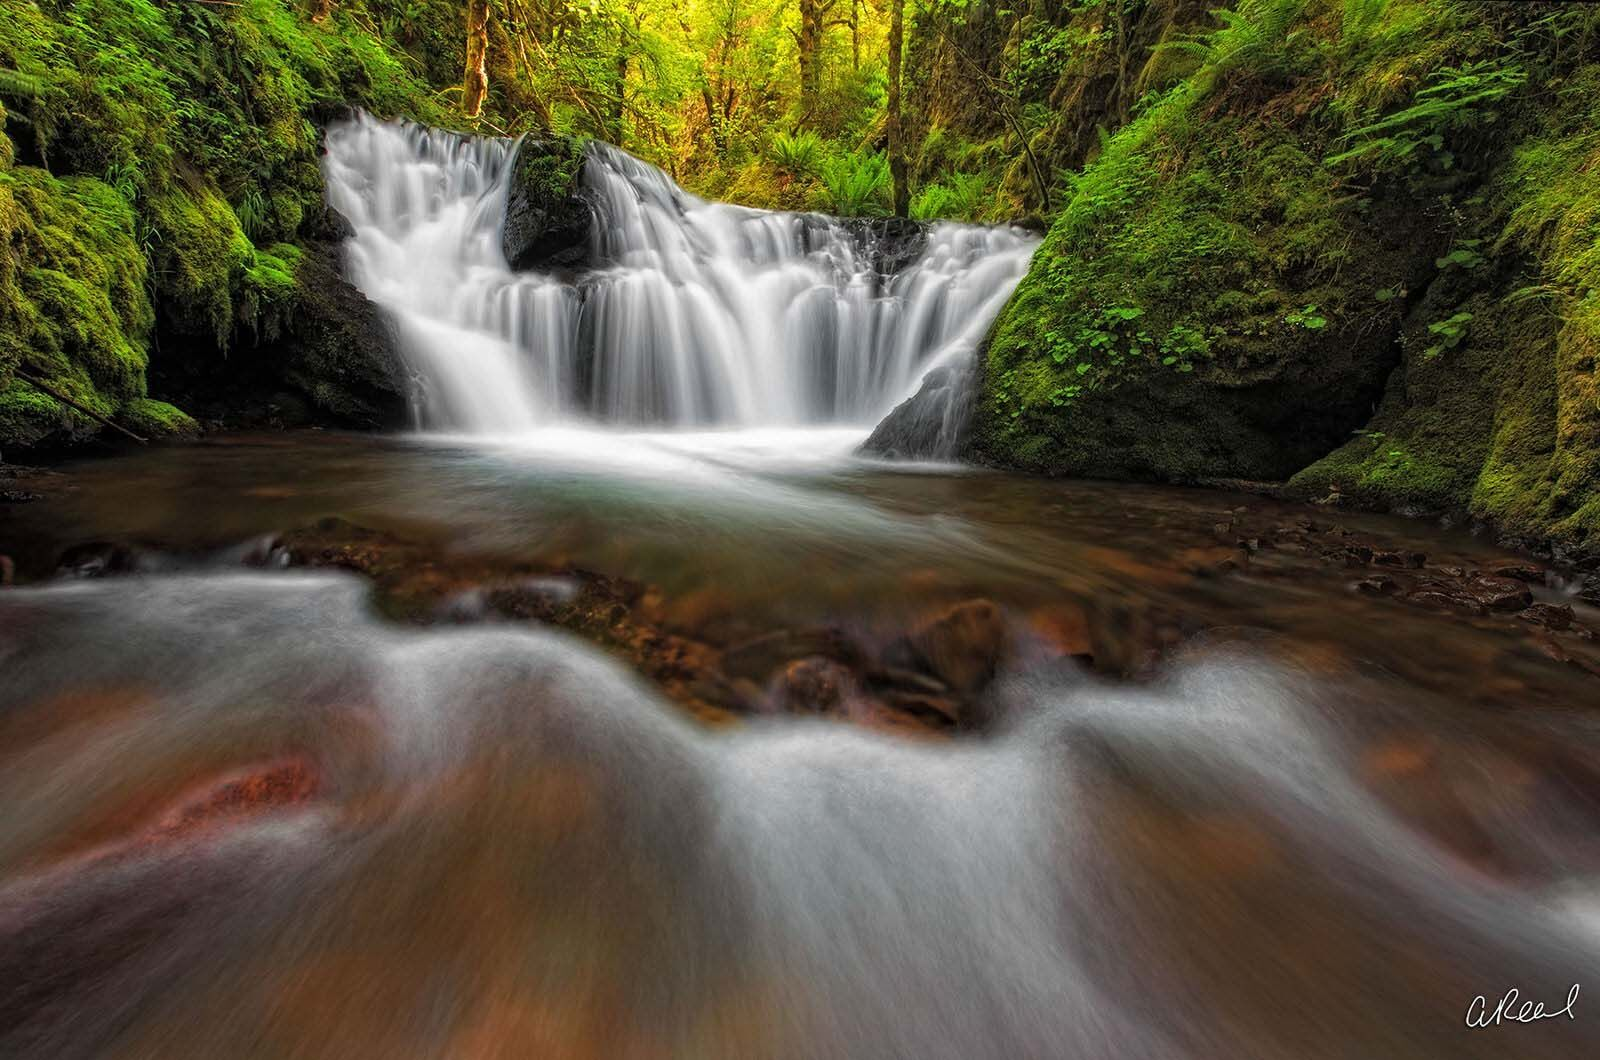 Create a window into nature with Aaron Reed's fine art photography print, The Wishing Well, from his world of waterfalls collection...